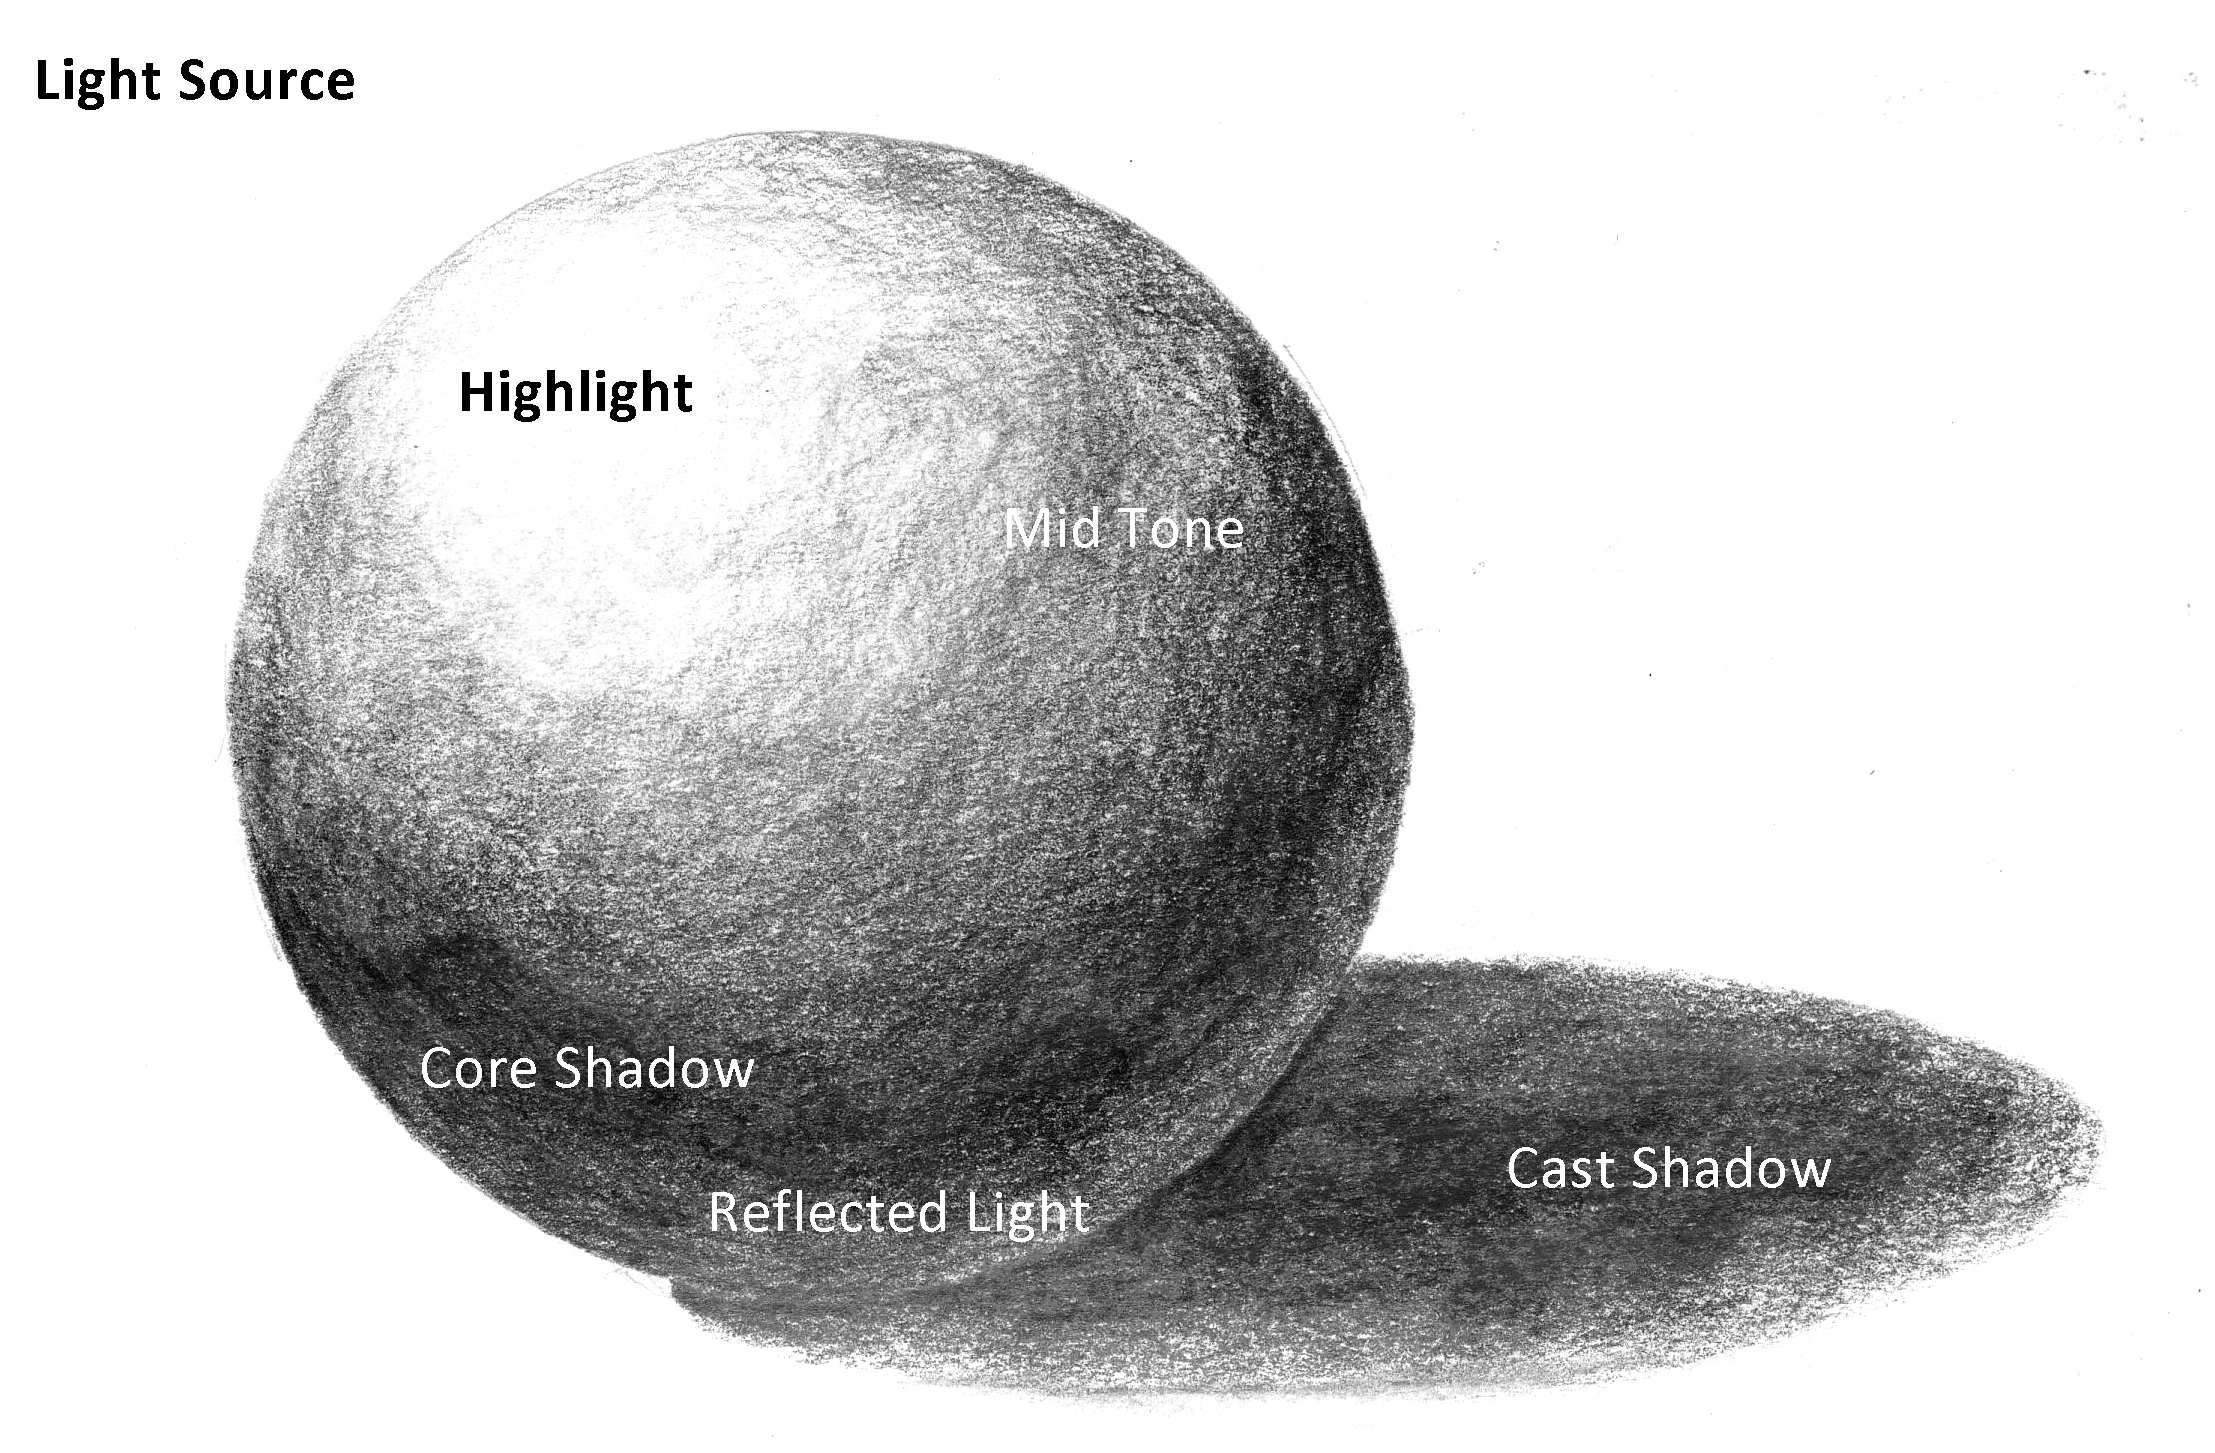 Drawing of a sphere from RachelCarter.ca showing highlight, mid tone, core shadow, reflected light and cast shadow.